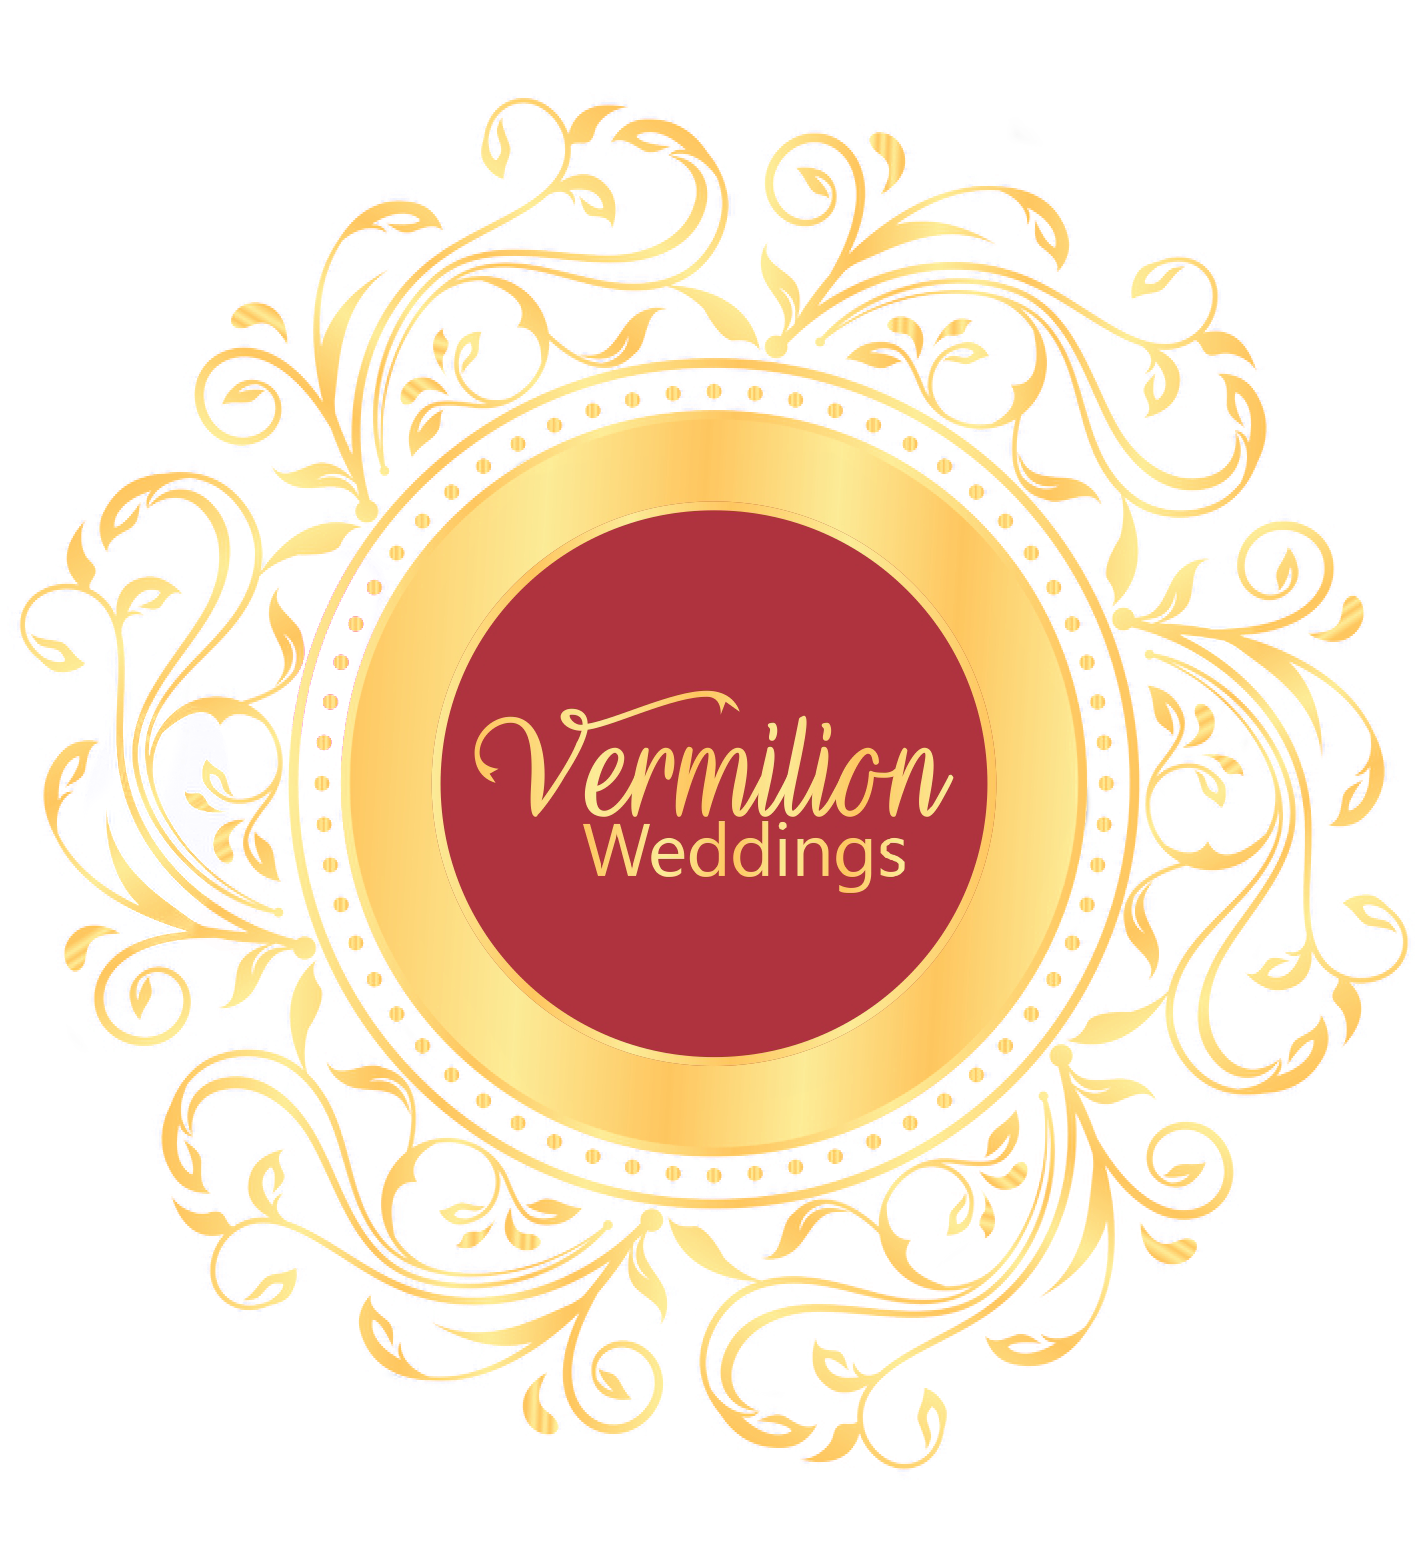 Vermilion Weddings